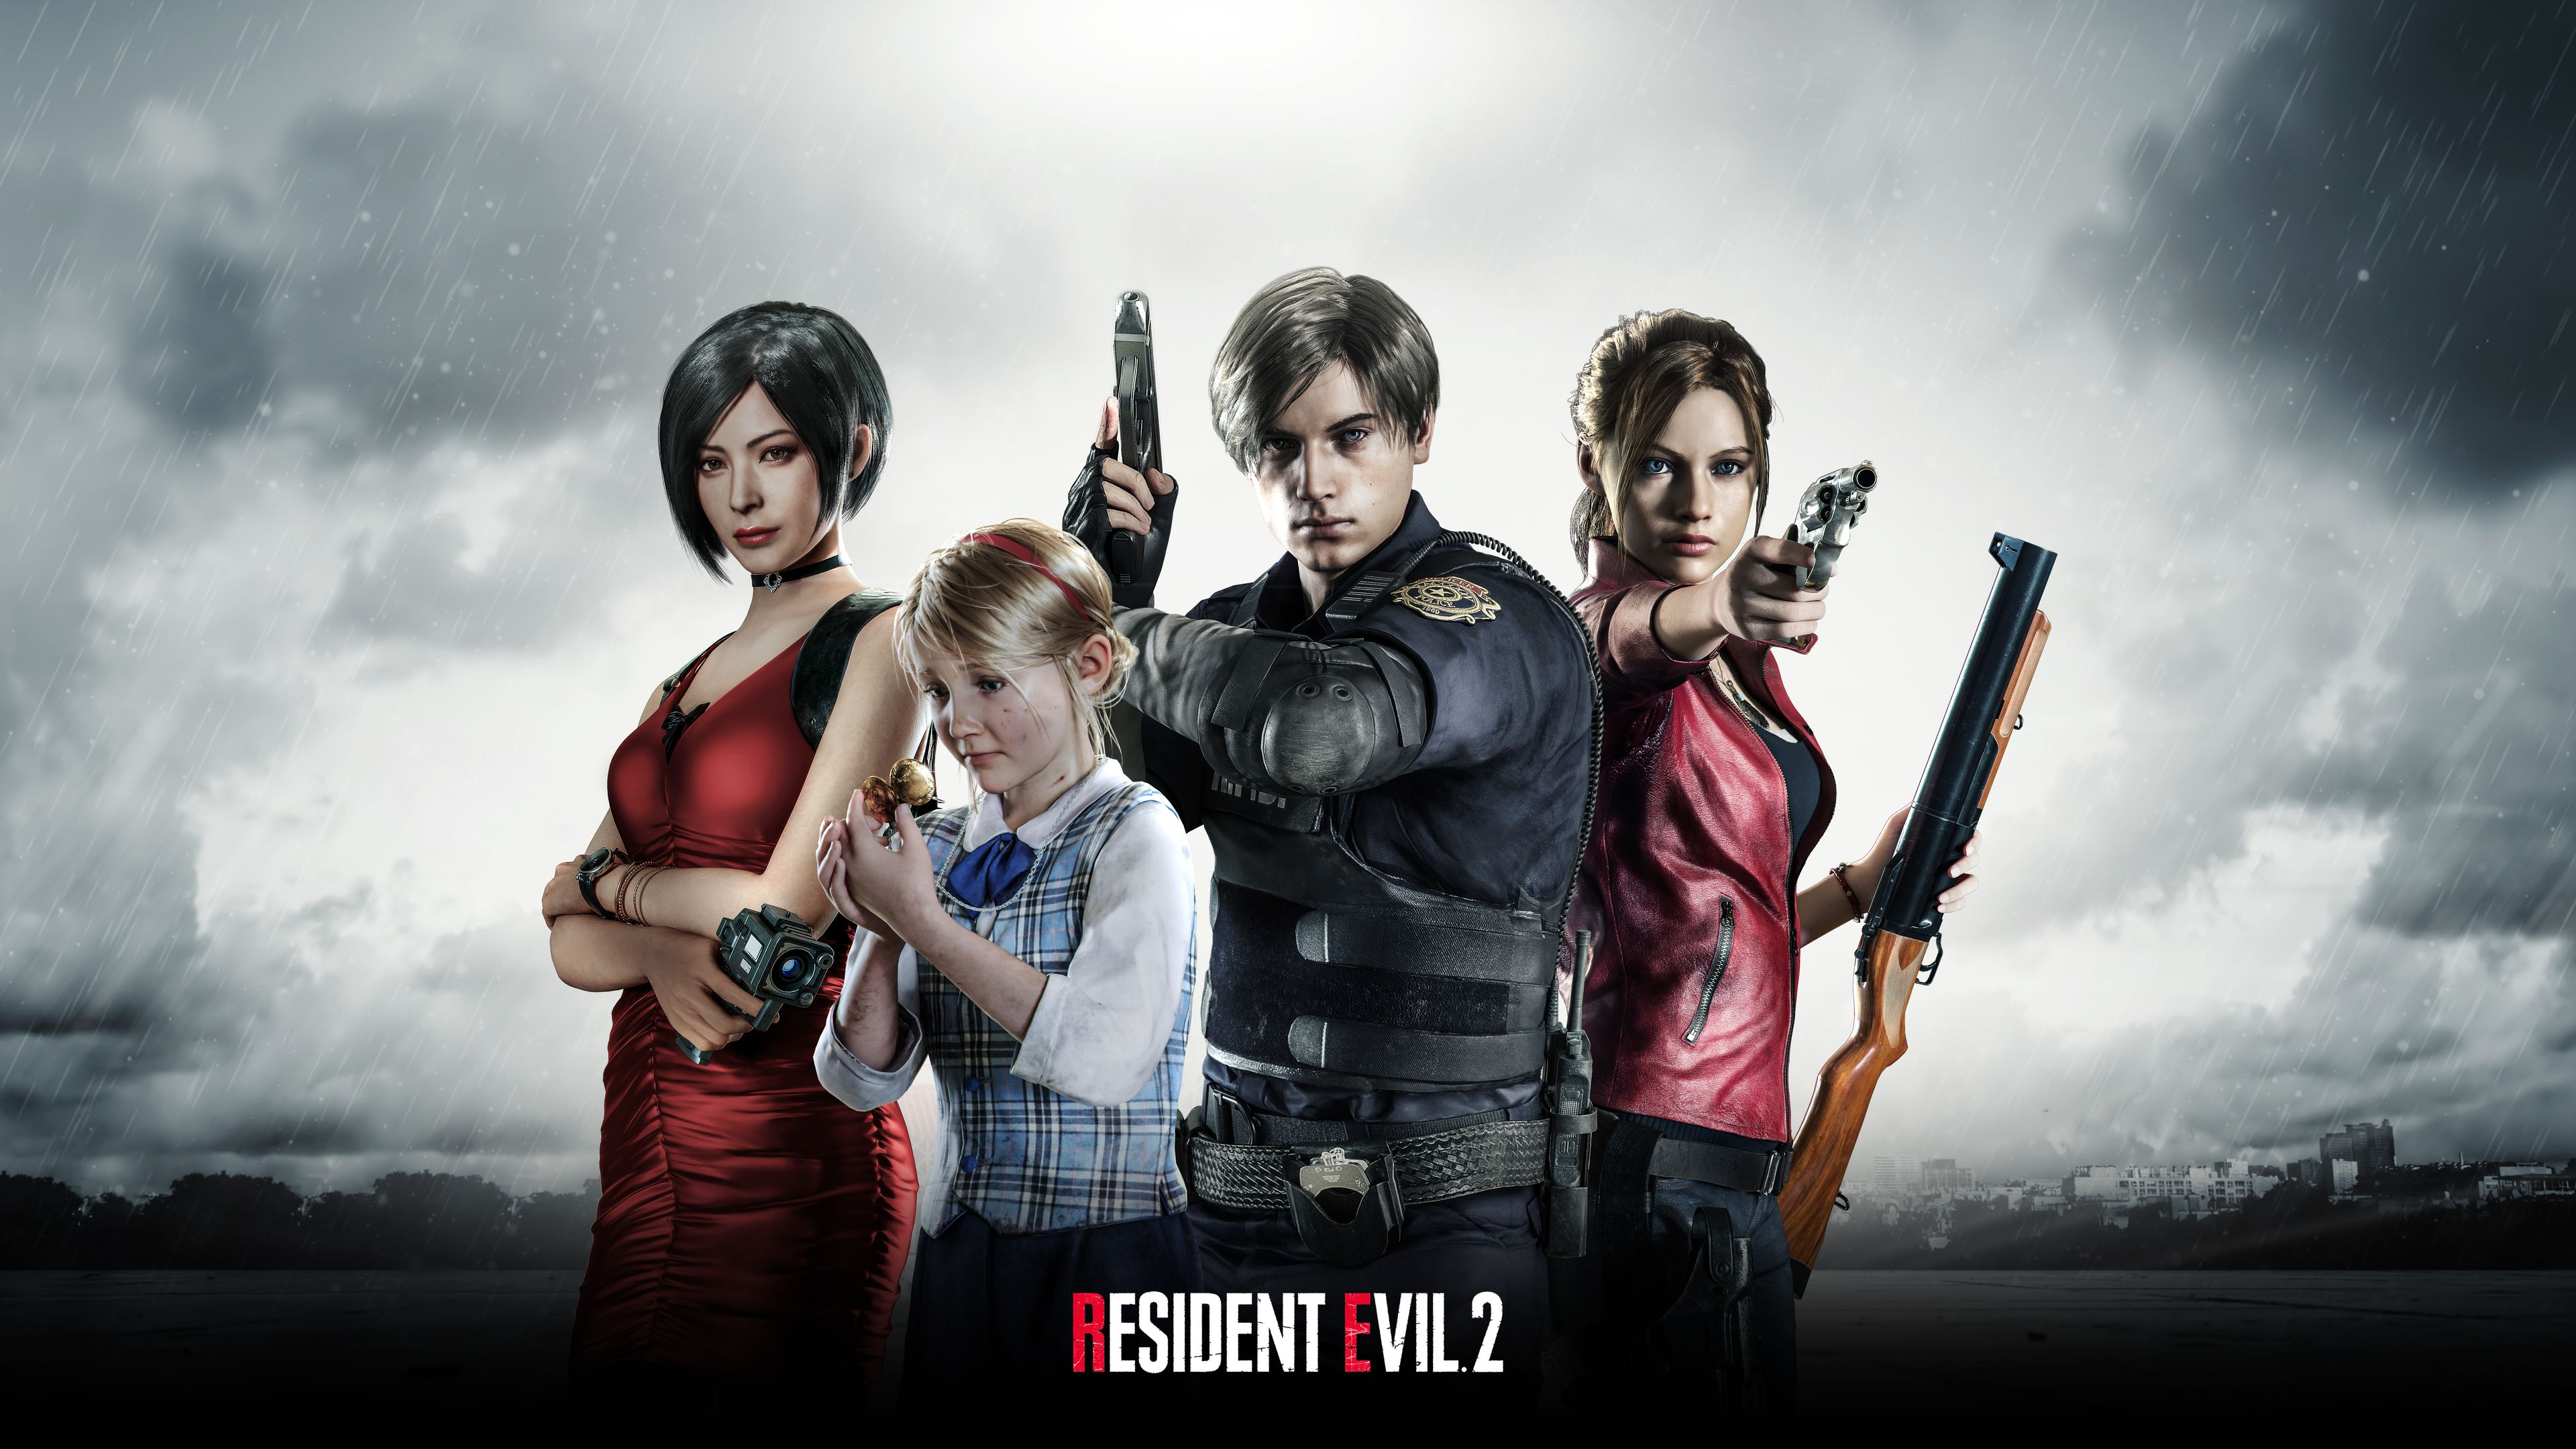 Resident Evil 2 2019 4k Resident Evil 2 Wallpapers Hd Wallpapers Games Wallpapers 8k Wallpapers 5k Wallpapers Resident Evil Resident Evil 3 Remake Resident